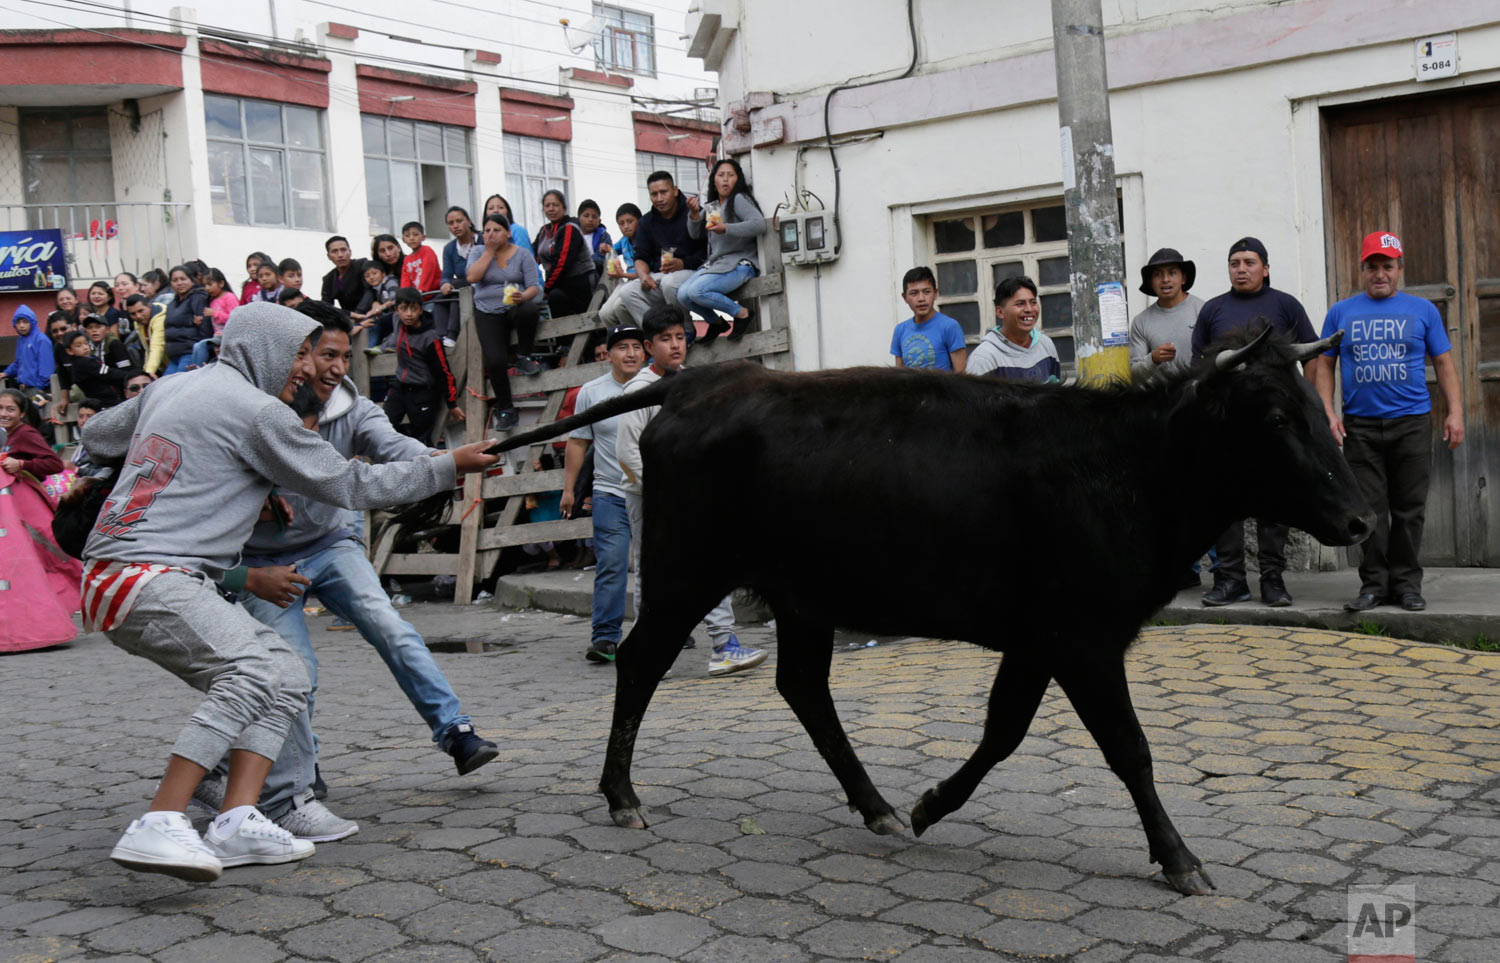 Men pull on the tail of a young bull during the running of the bulls in Pillaro, Ecuador, Aug. 4, 2018. Dozens of bulls run through this small Andean city and allowed spontaneous bullfighters shine with their pirouettes and with more than one accident among the curious. (AP Photo/Dolores Ochoa)